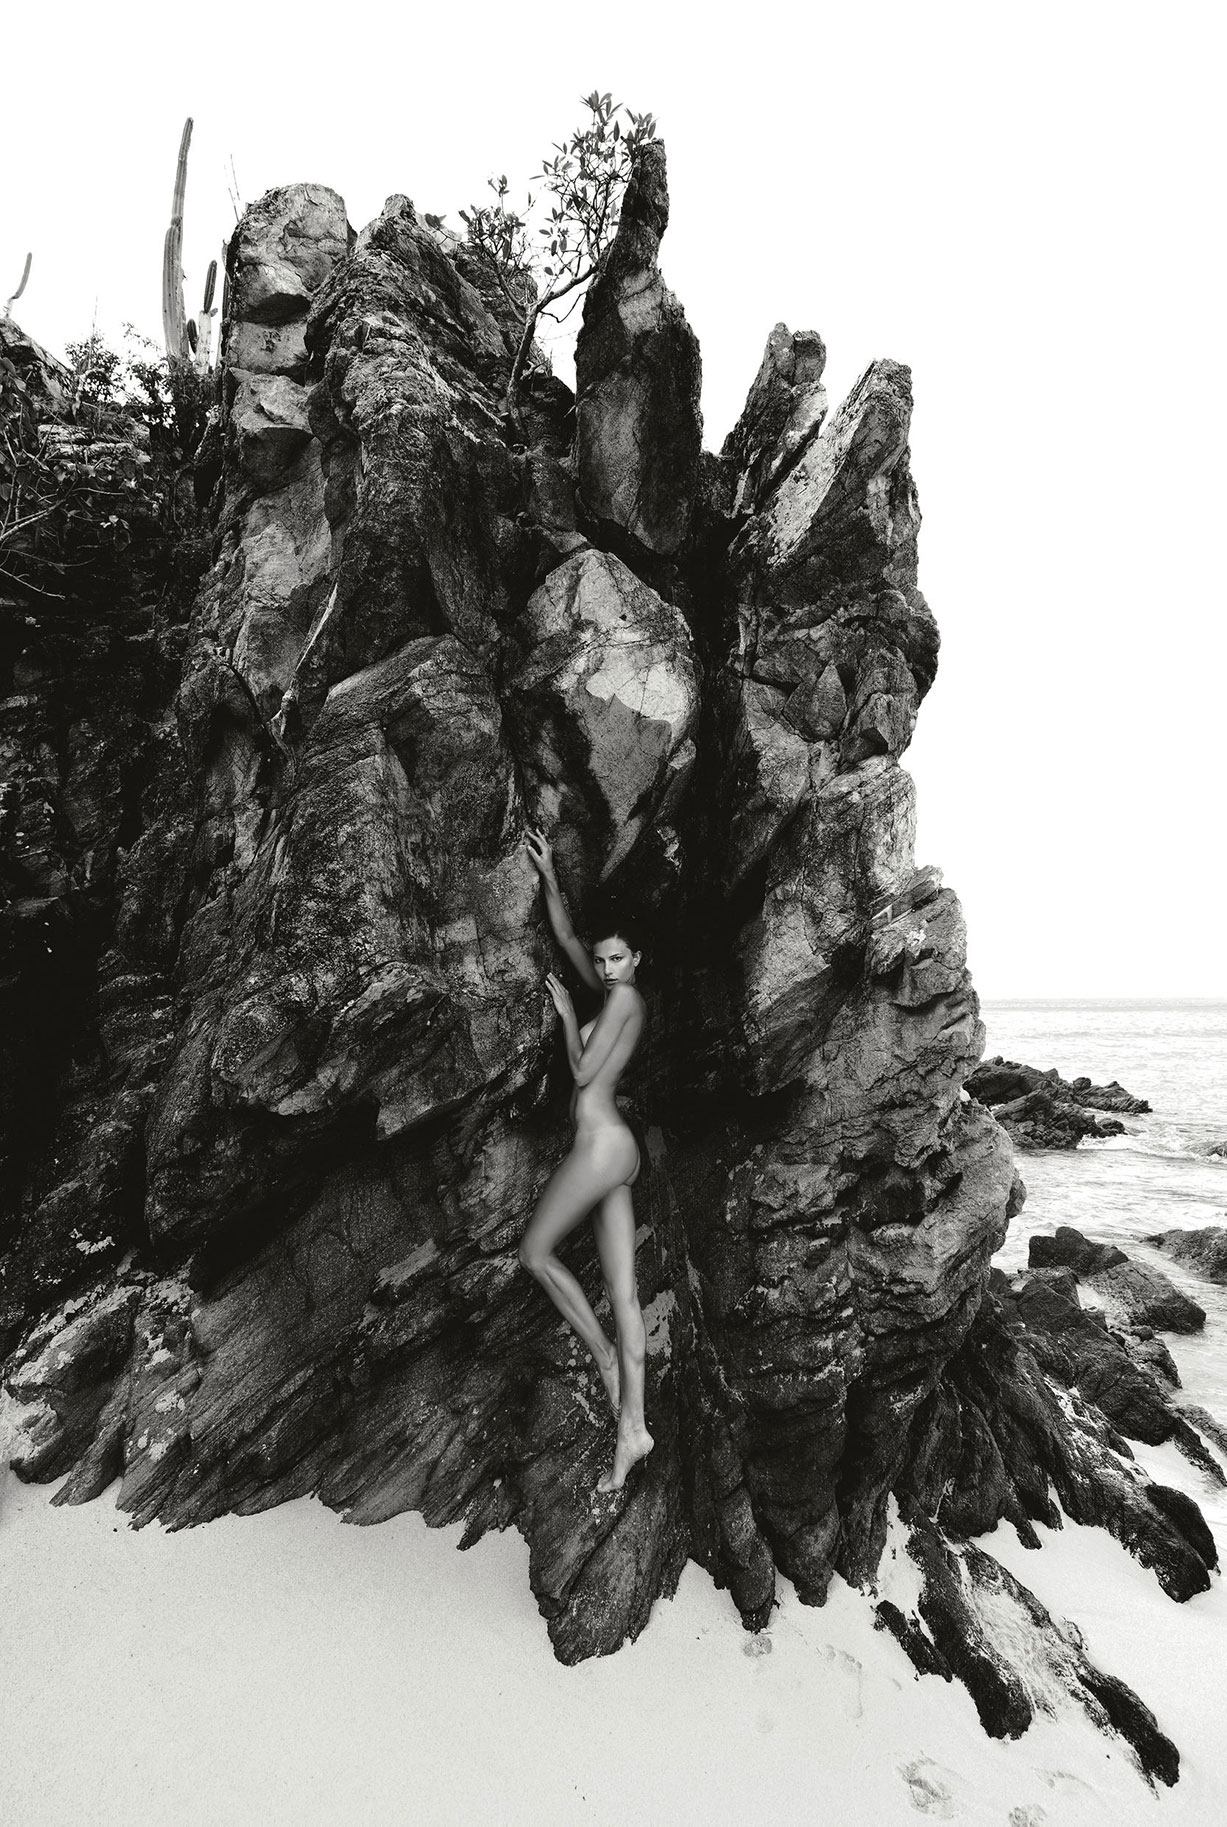 Rebecca at Gouverneur Beach - Sirens of St. Barts by Jean-Philippe Piter